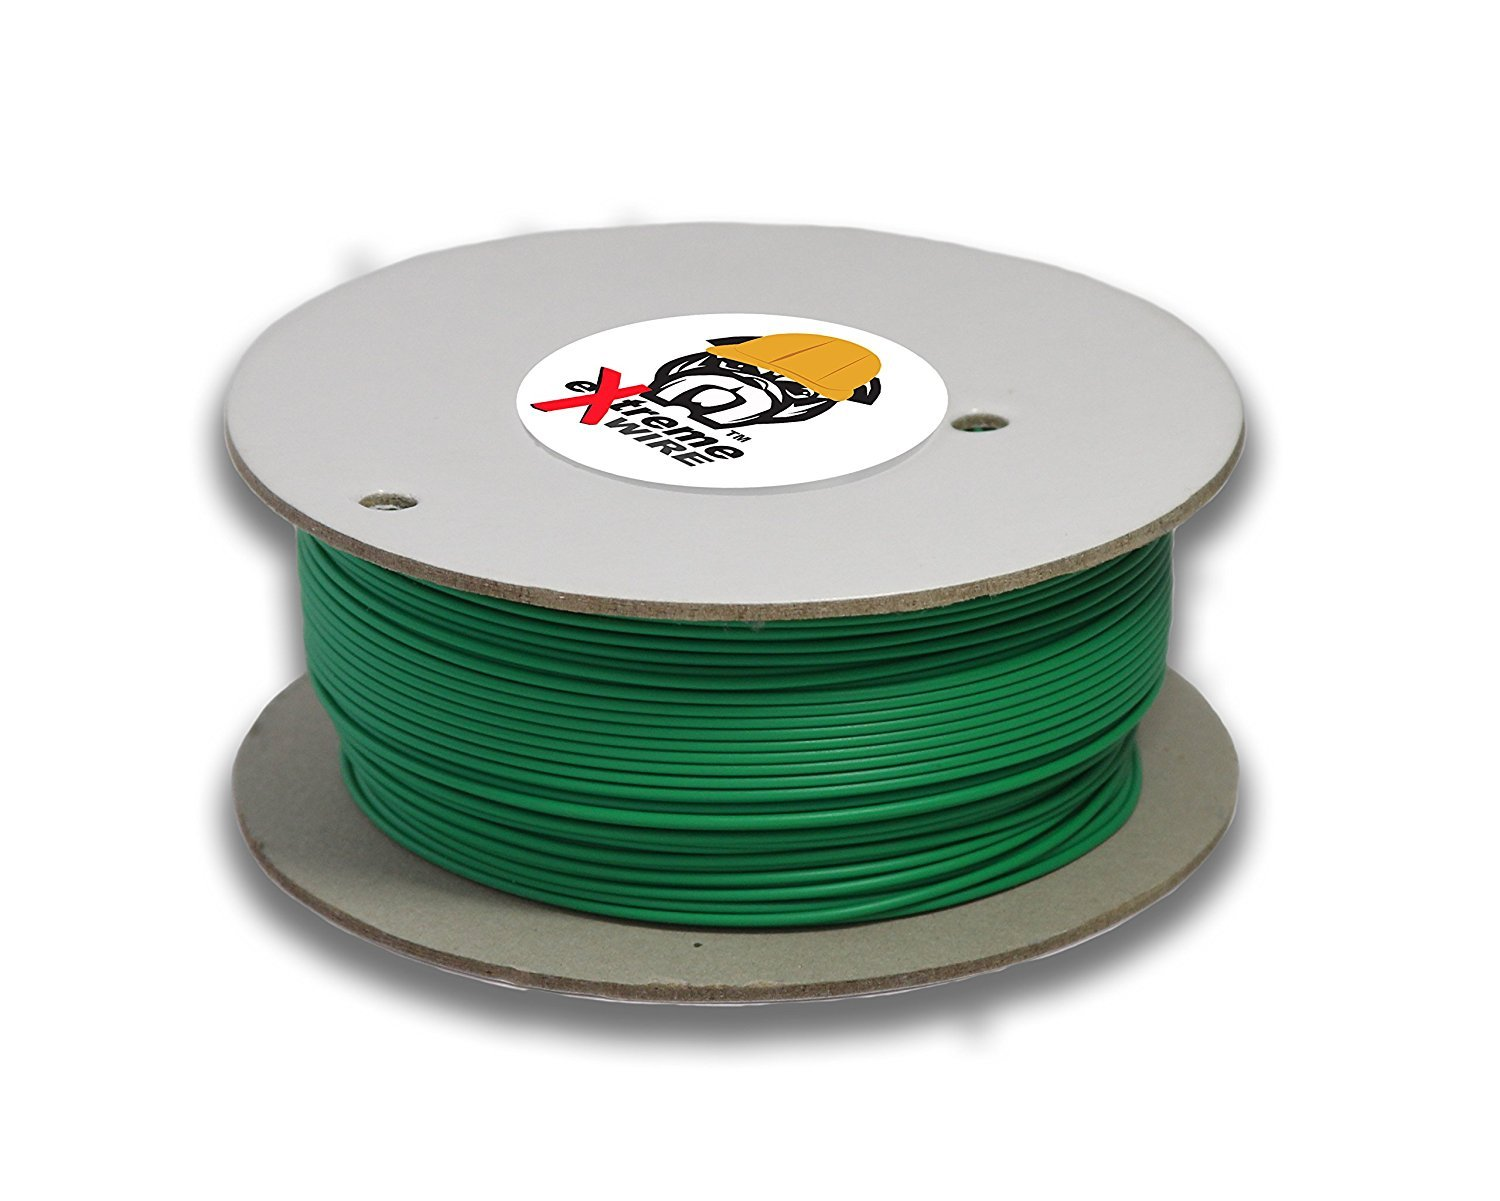 Extreme Dog Fence 20 Gauge Wire 2000 Ft - Pet Containment Wire Compatible with Every in-Ground Fence System for Dogs - Pure Solid Copper Core Dog Containment System Wire by Extreme Dog Fence